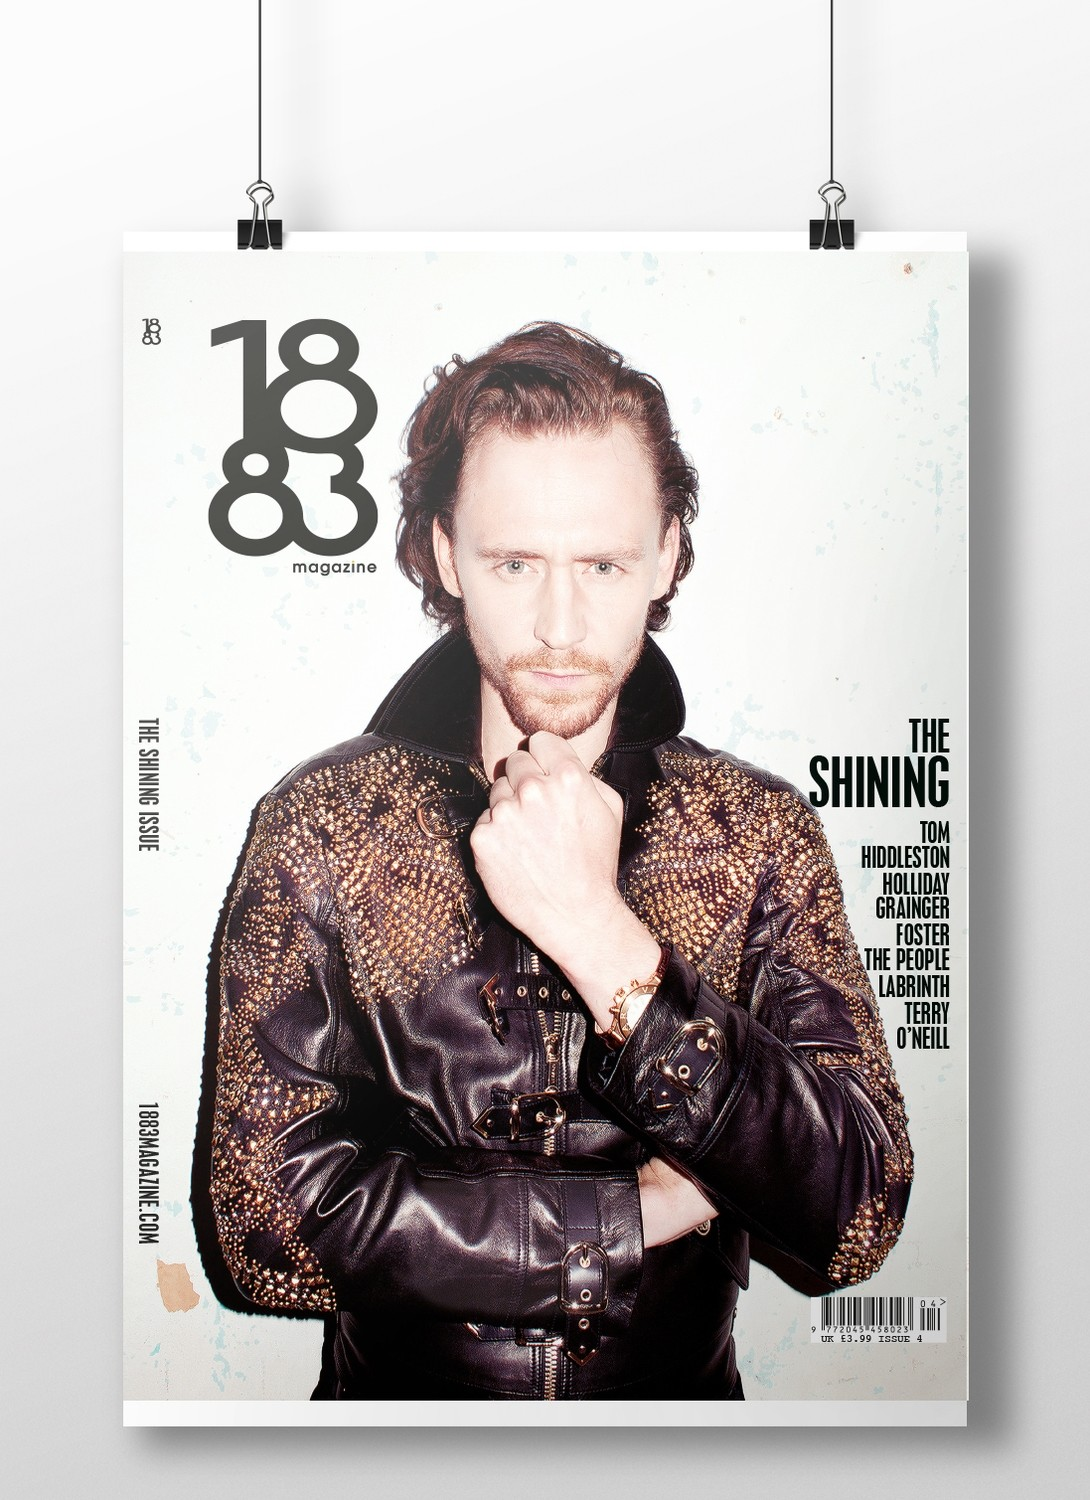 Tom Hiddleston cover poster